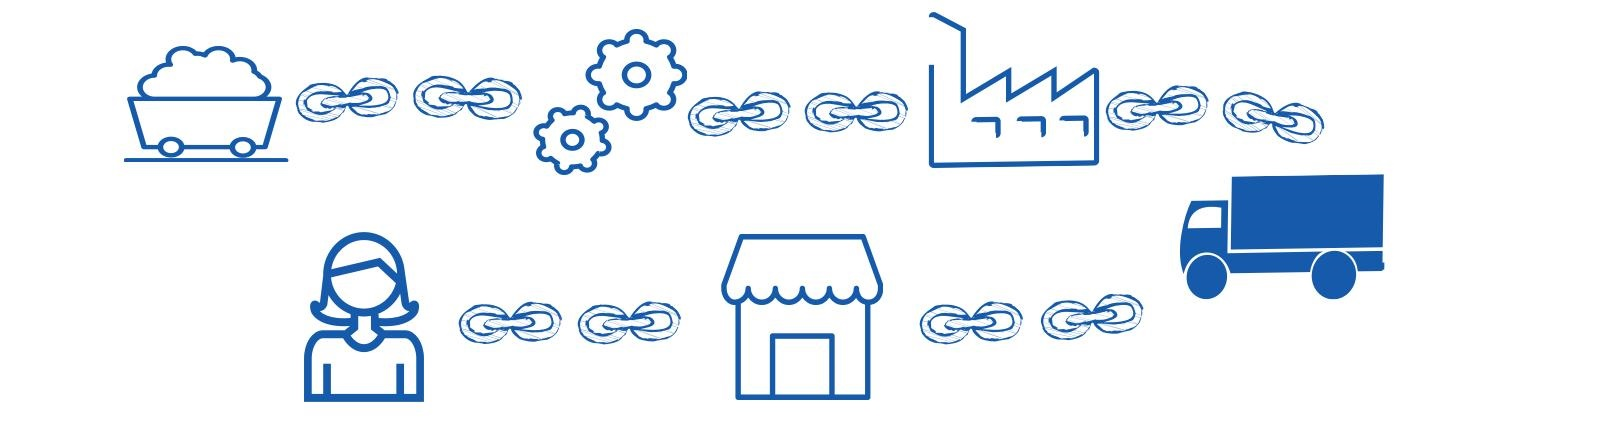 Technology Management Image: End-to-end Tutorial To Trace Asset On Supply Chain With